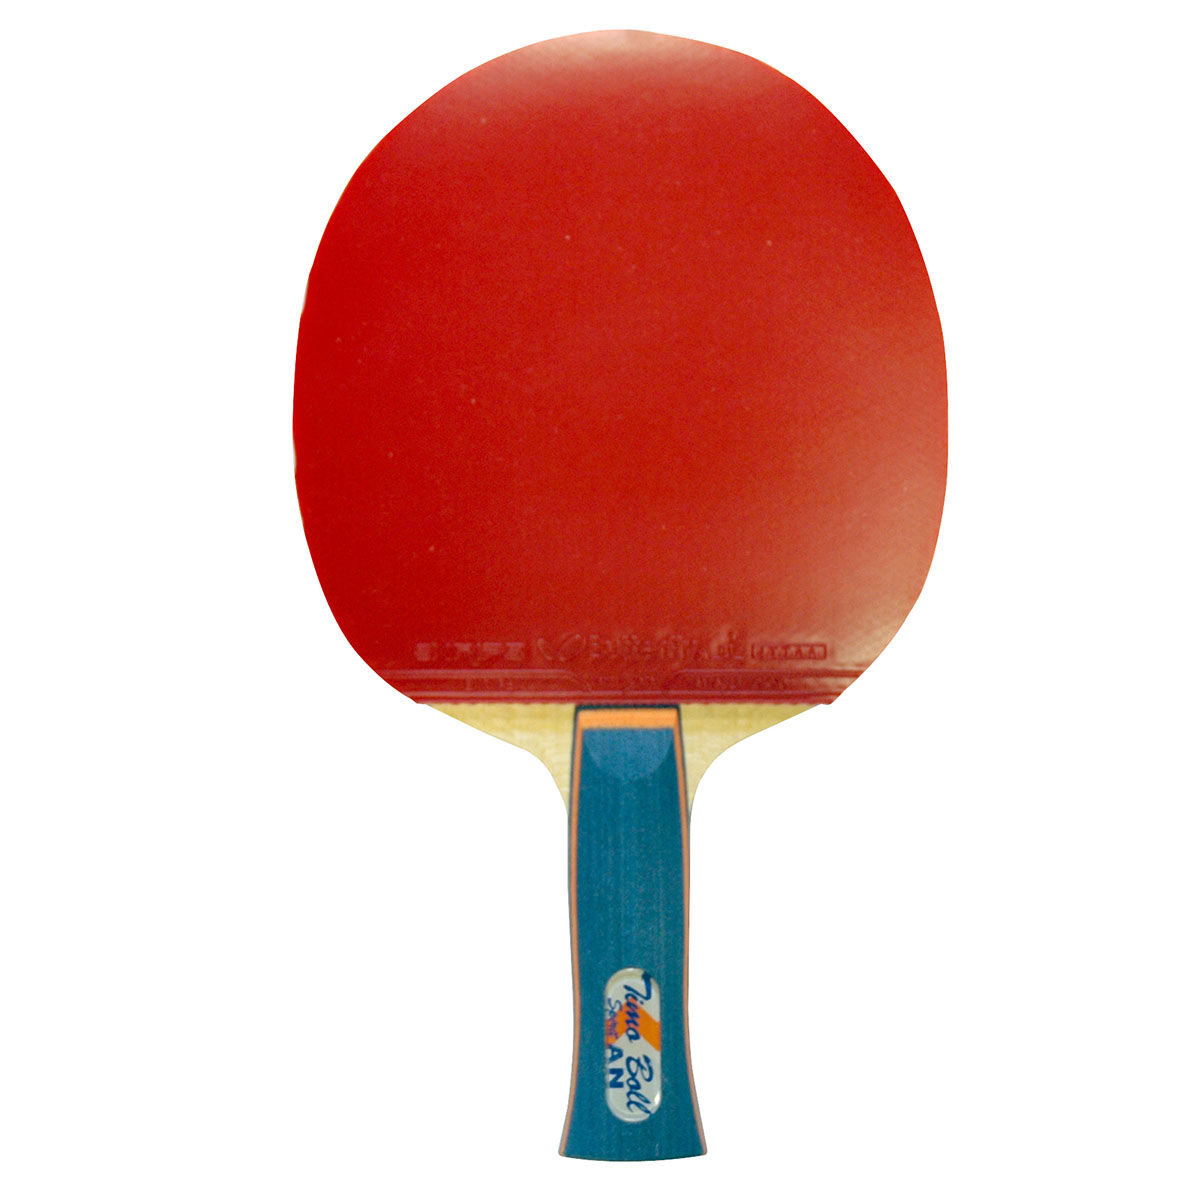 Butterfly tenergy 05 - Butterfly table tennis official website ...